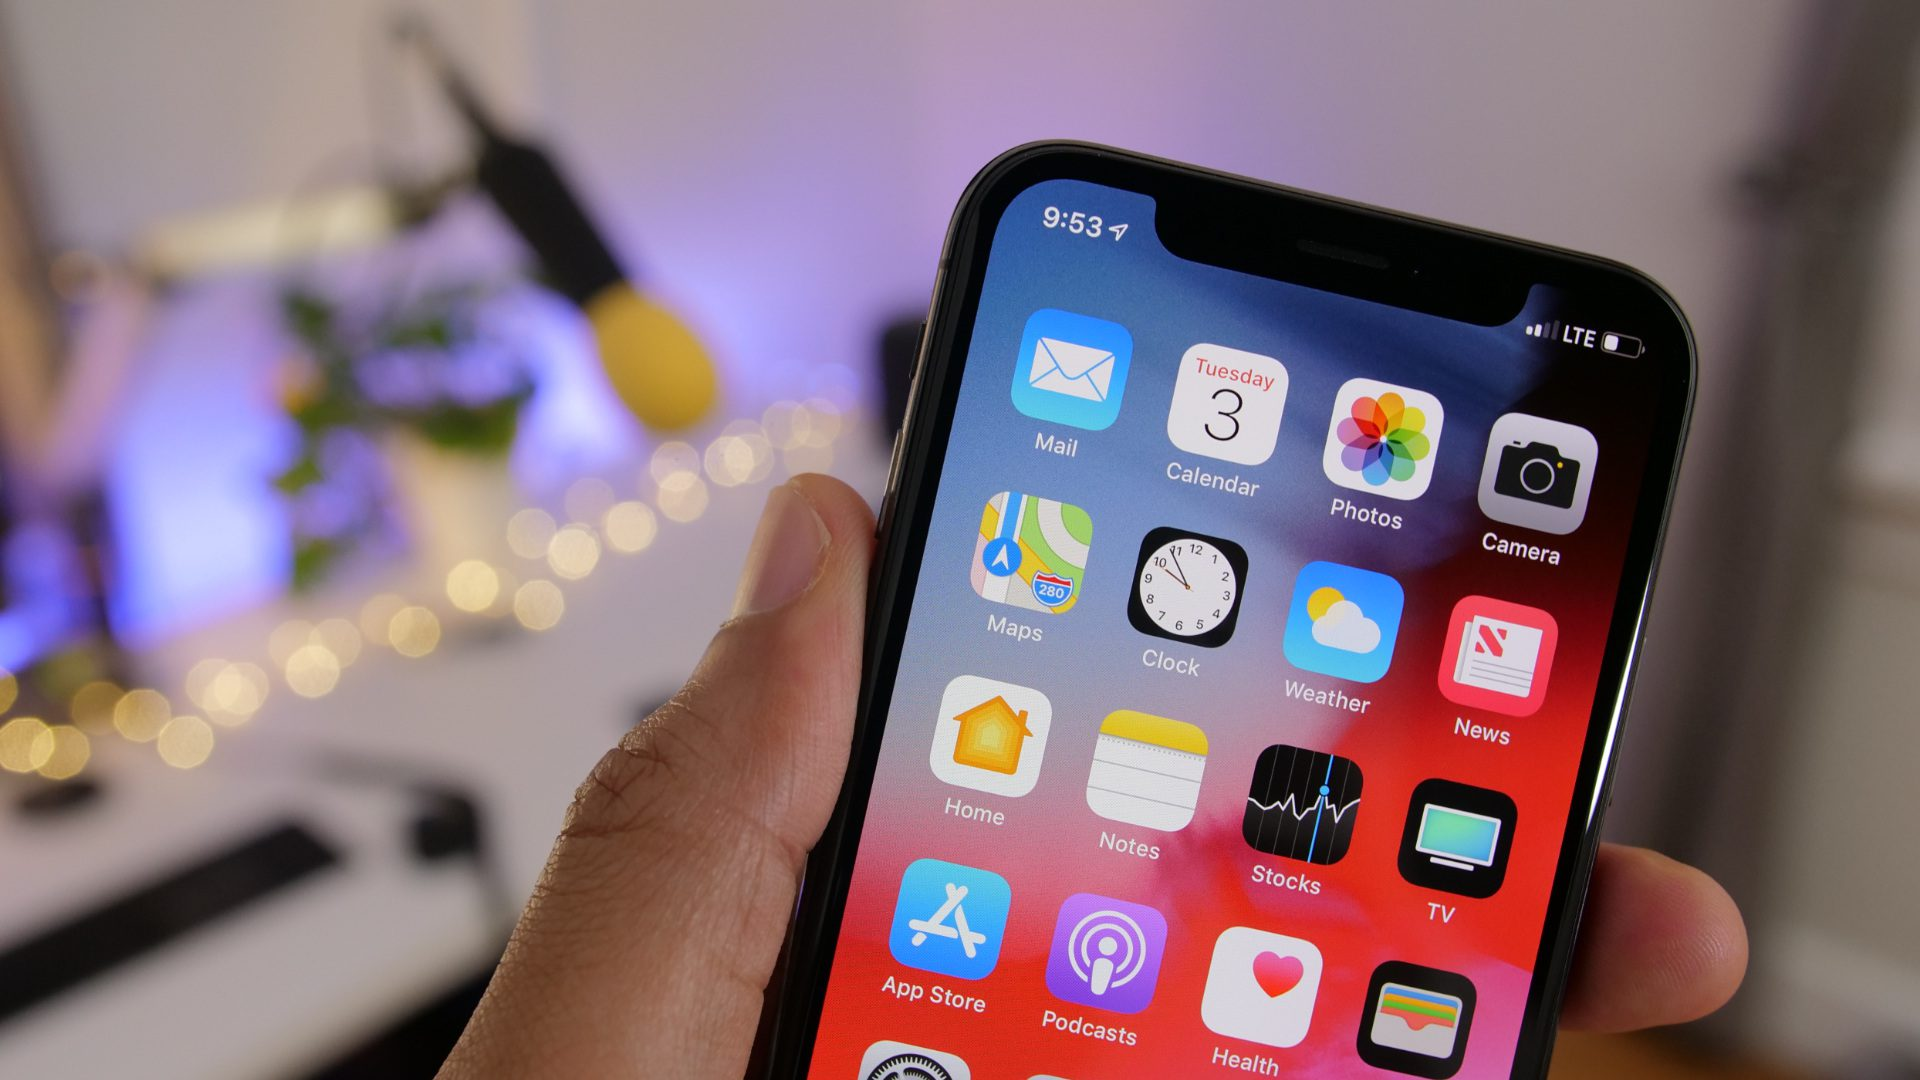 iOS 12 developer beta 4 for iPhone and iPad now available https://t.co/QCKDKbyDjo by @apollozac https://t.co/kKAu52VYEr